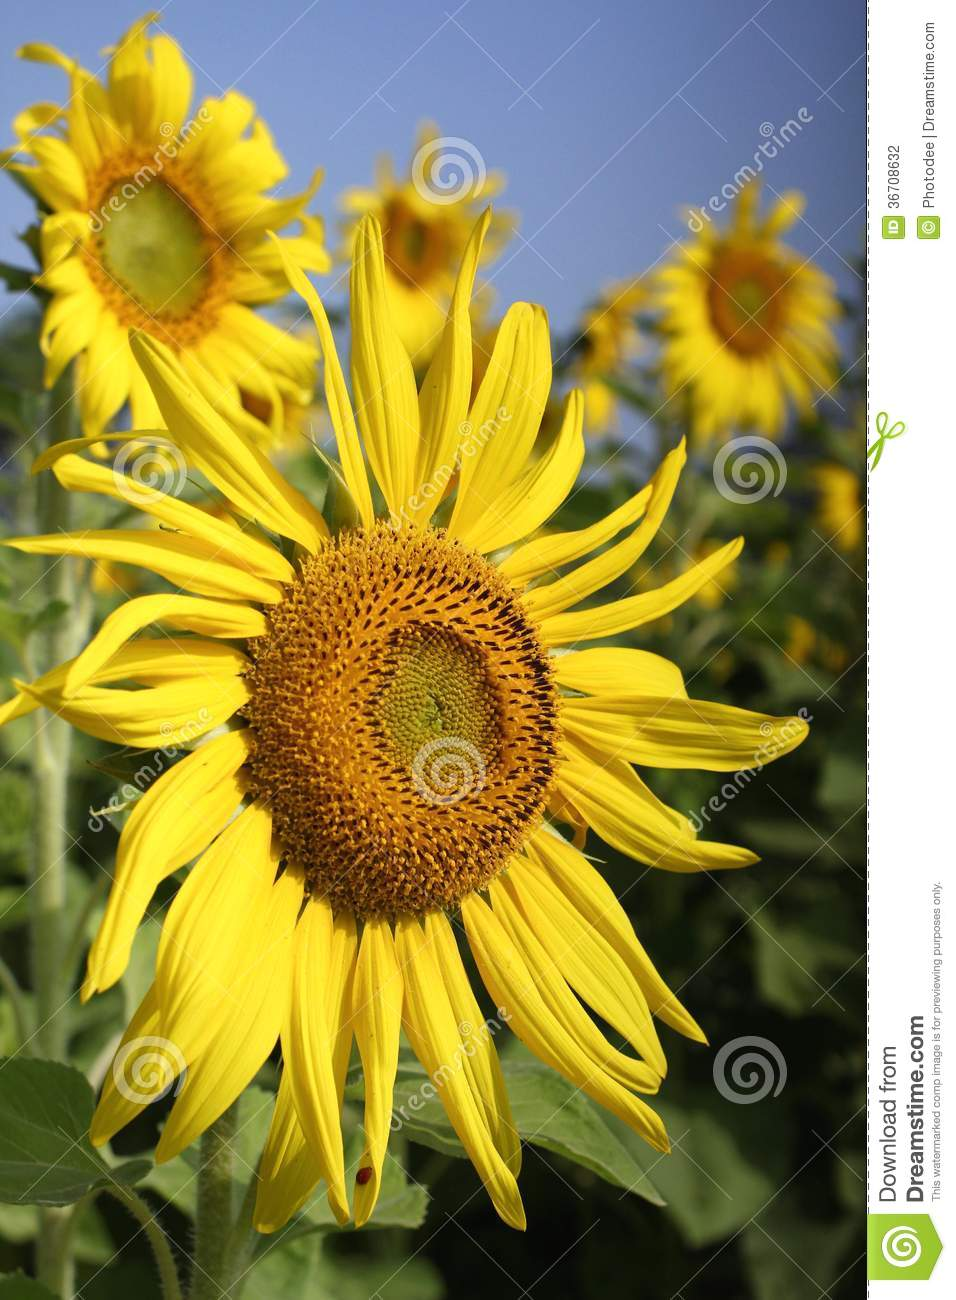 sunflower field picture blooming - photo #22